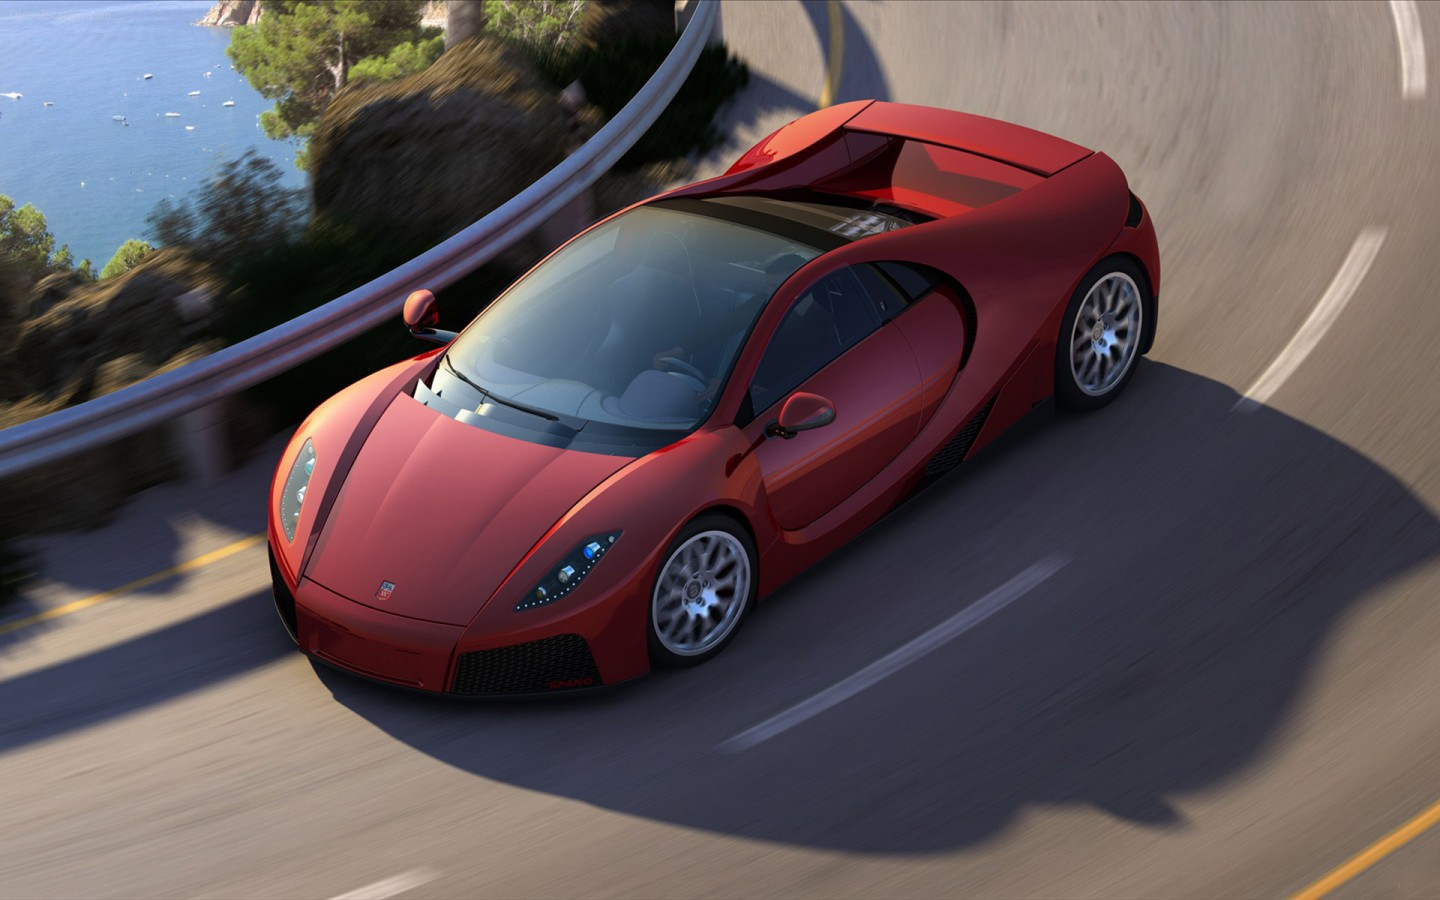 2012 Gta Spano Wallpaper Hd Car Wallpapers Id 2496